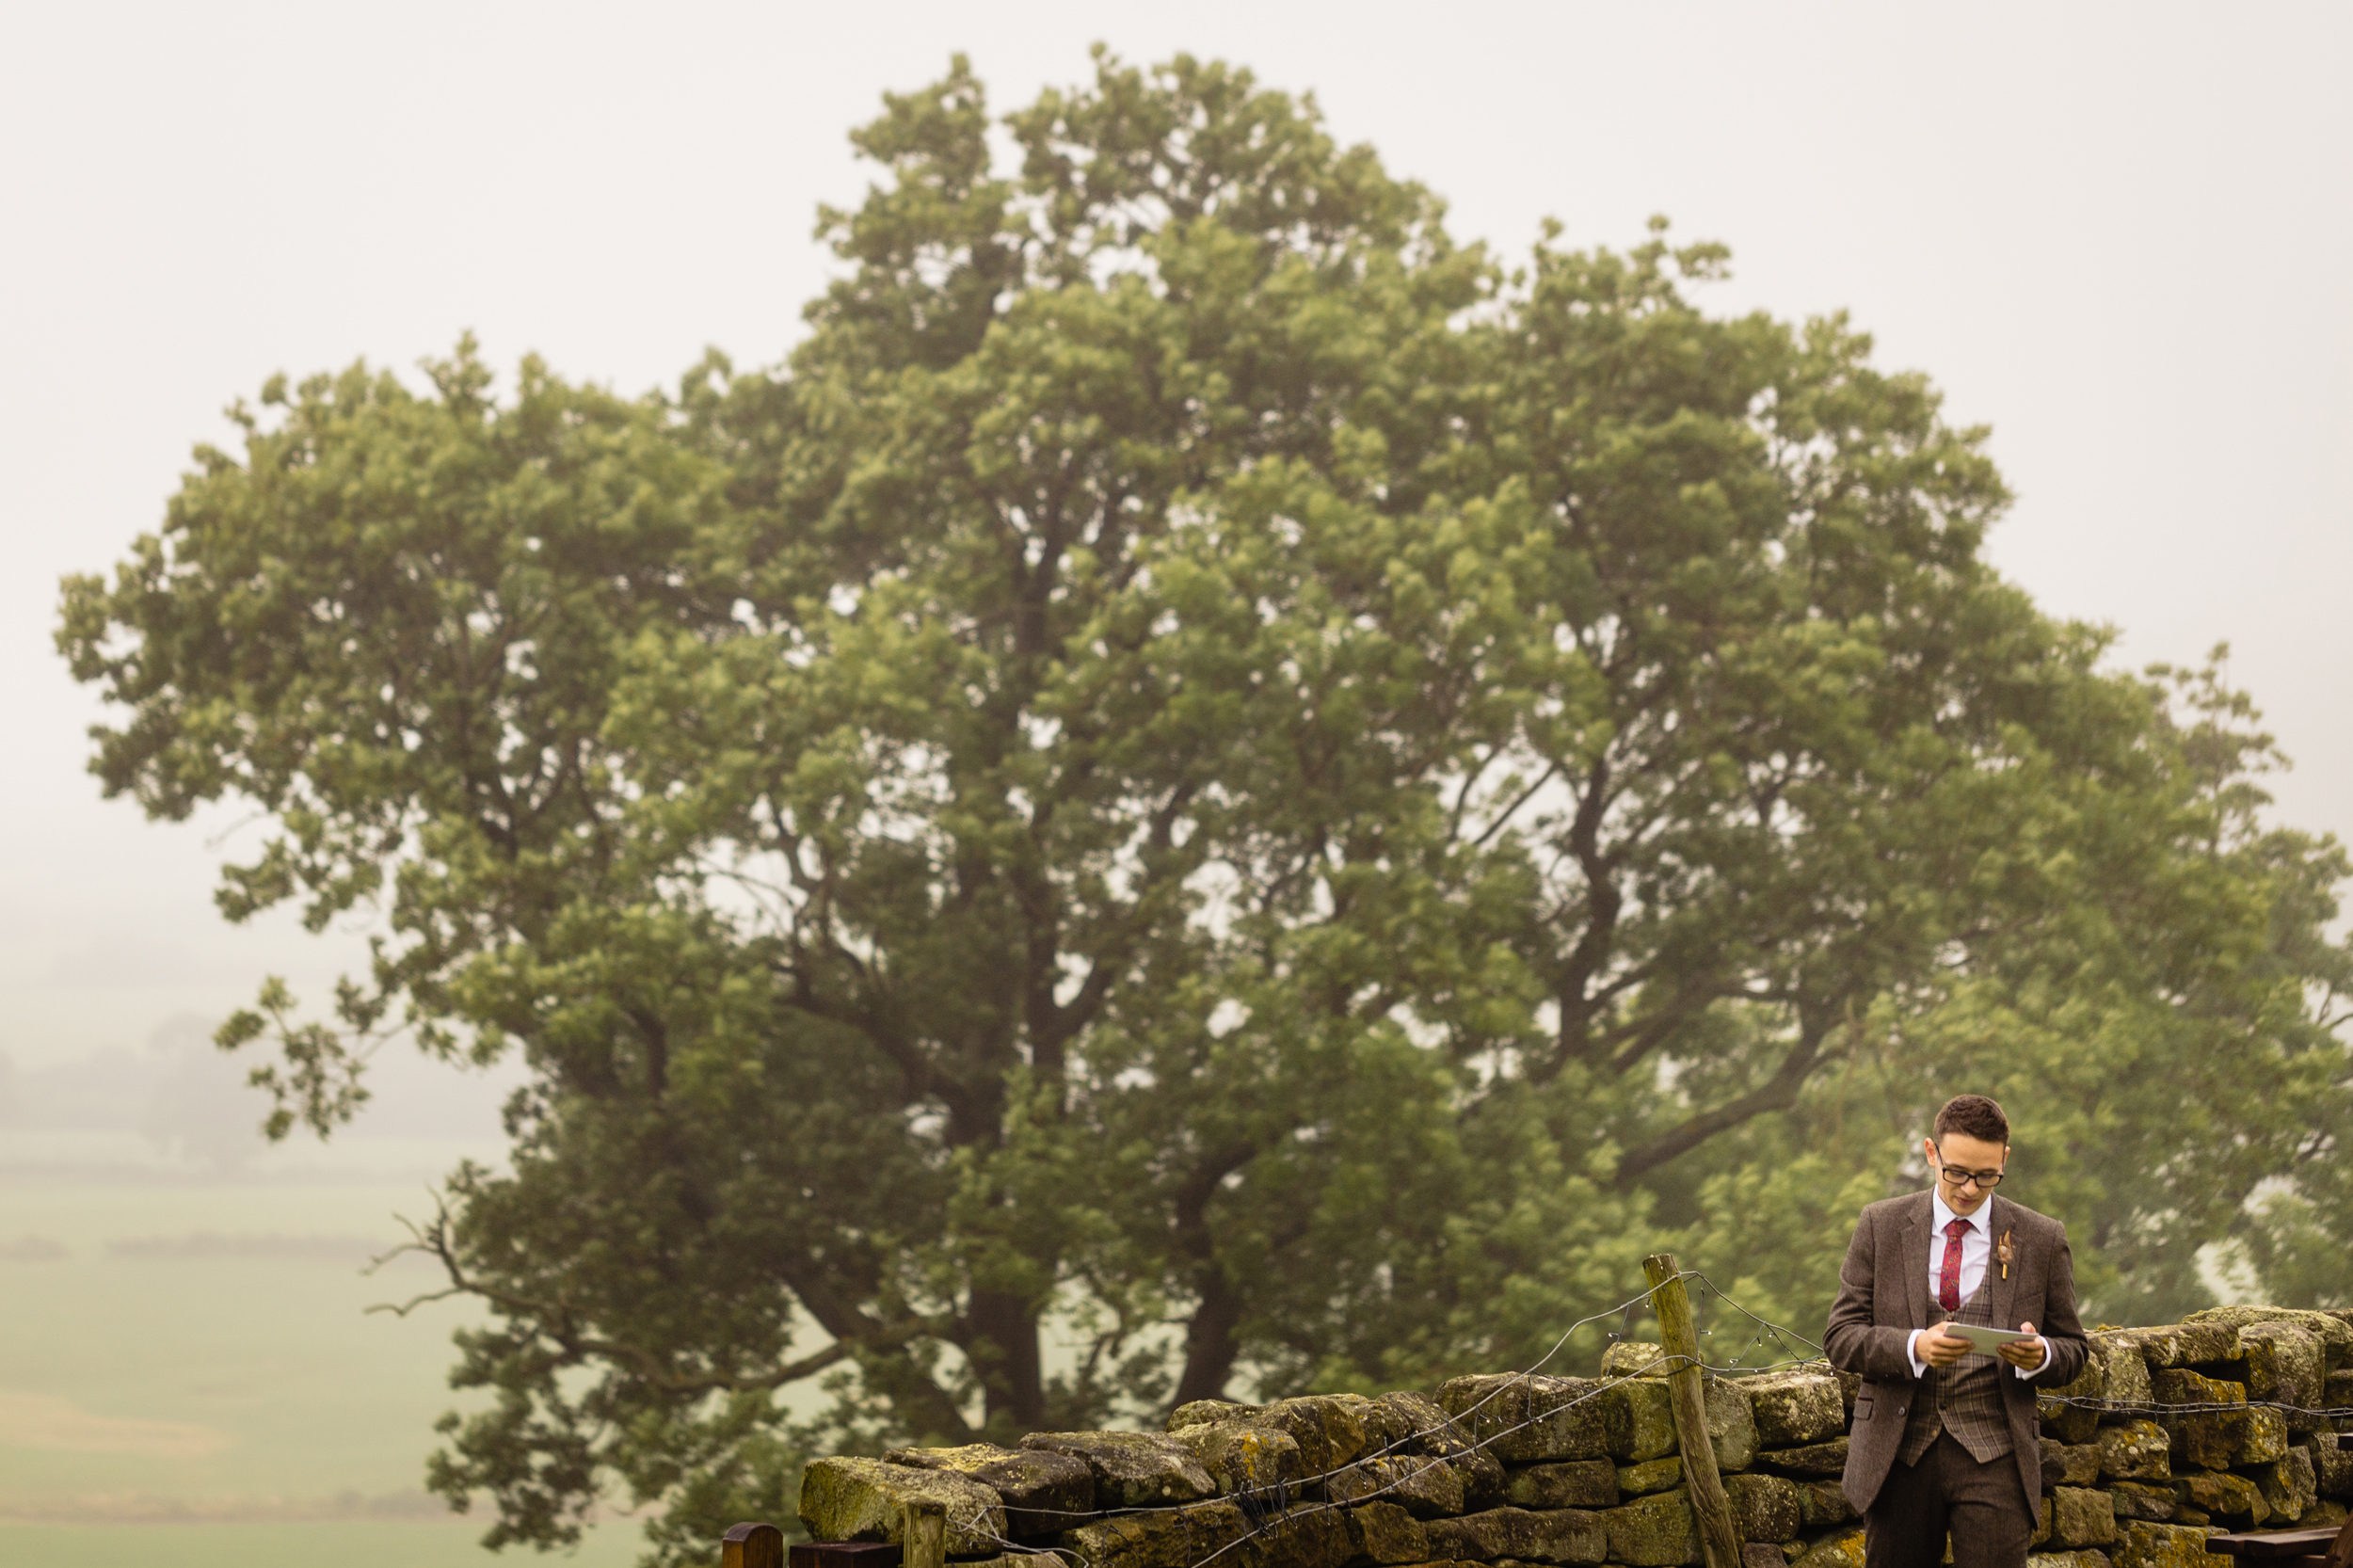 best man practicing his speech. esk valley wedding photography by emma and rich.